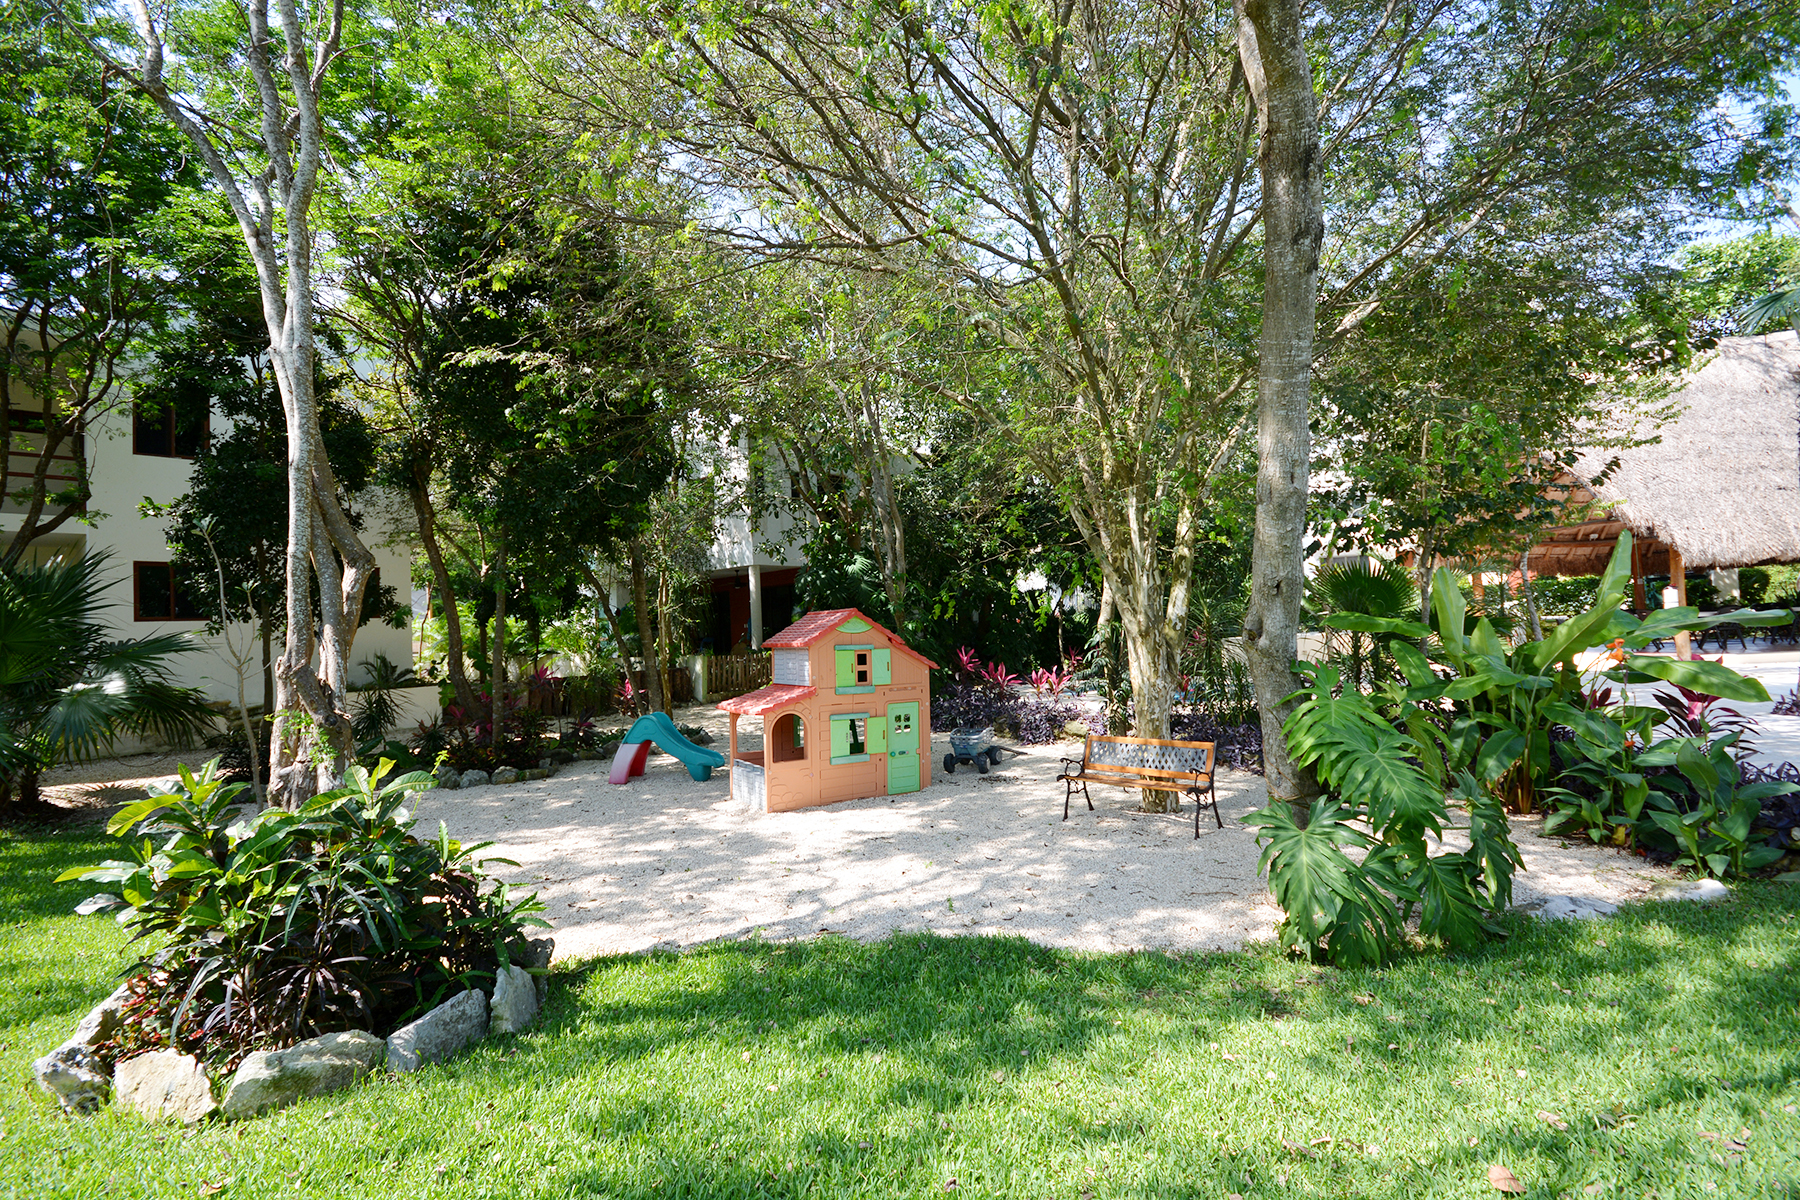 Additional photo for property listing at RESIDENCIA DE LUJO EN COMUNIDAD CERRADA Privada Orquídeas Selvamar Playa Del Carmen, Quintana Roo 77710 México